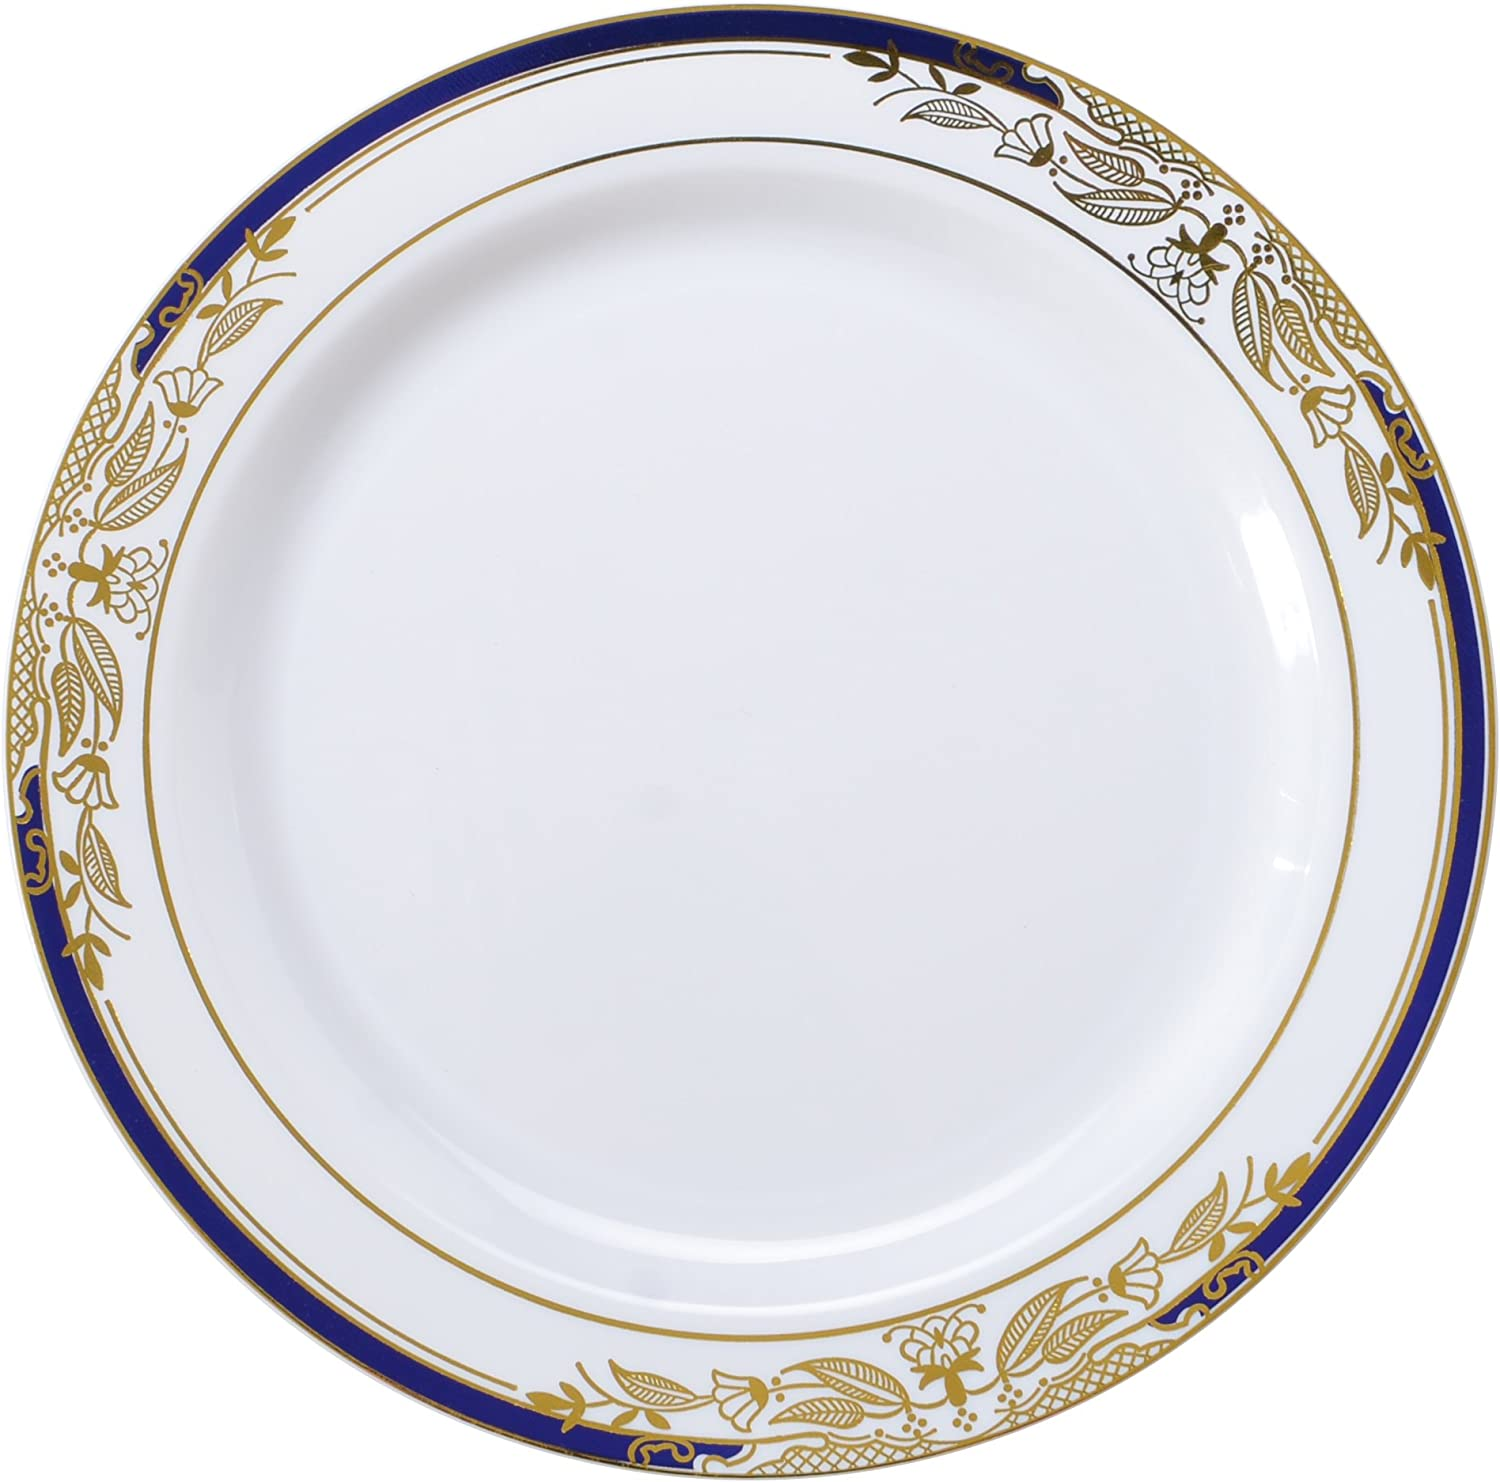 Signature blue 120 Piece Salad Plate with Cobalt Trim & gold Stamping, 7.5 , White